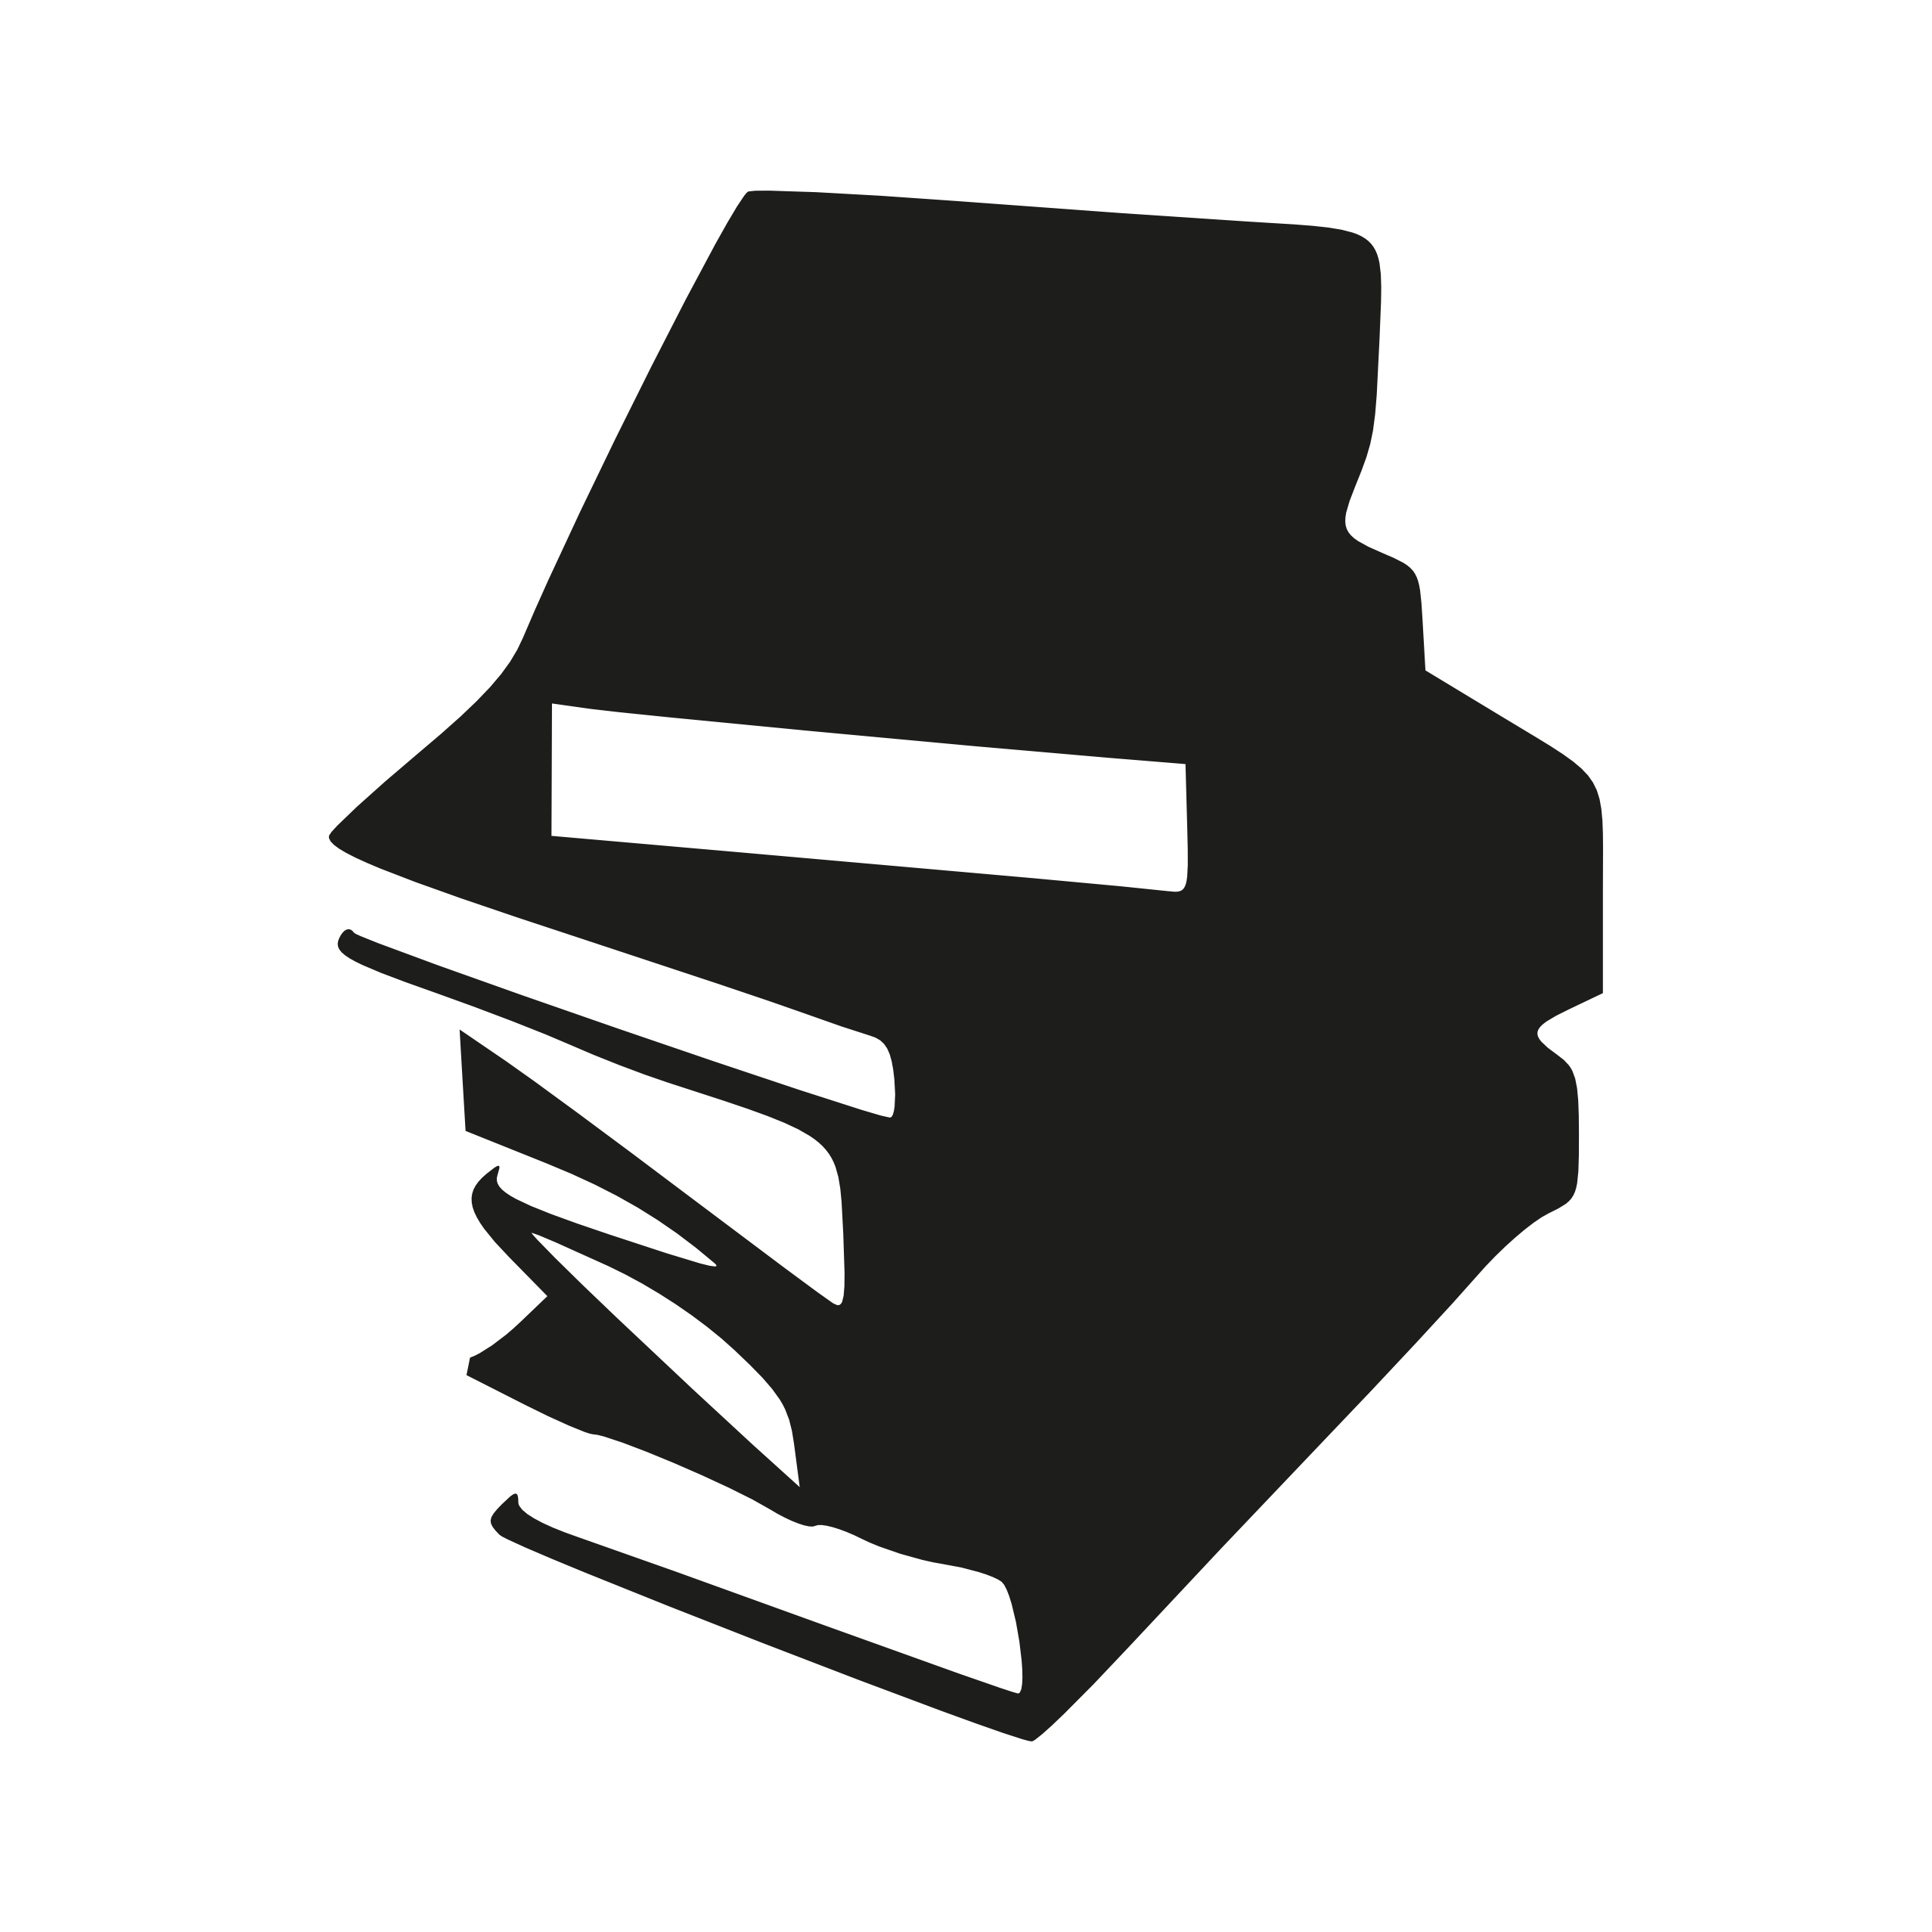 stack%20of%20paper%20png